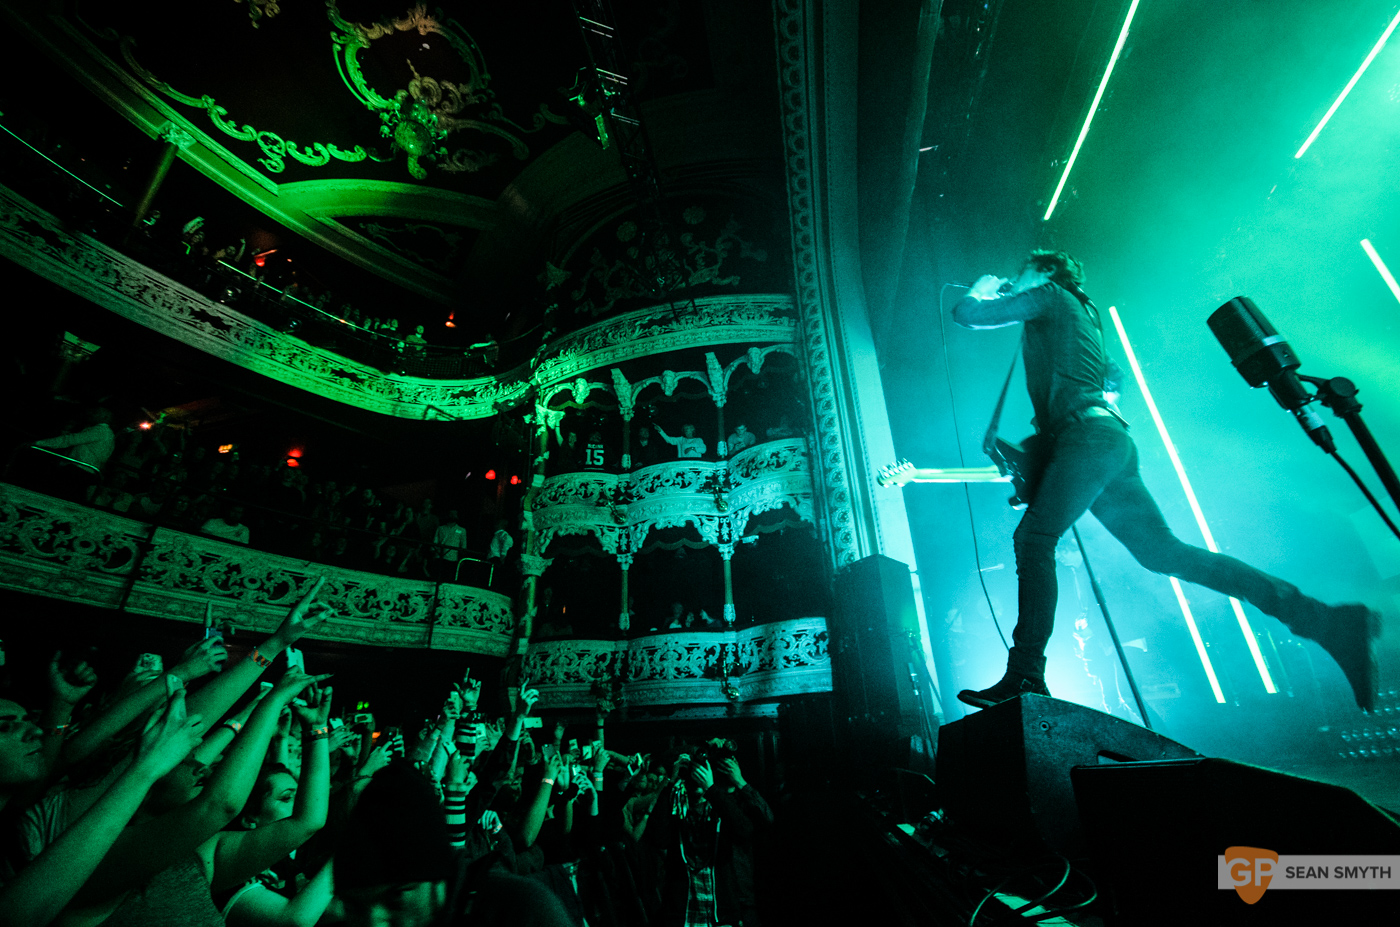 catfish-and-the-bottlemen-at-the-olympia-theatre-by-sean-smyth-20-11-16-22-of-27